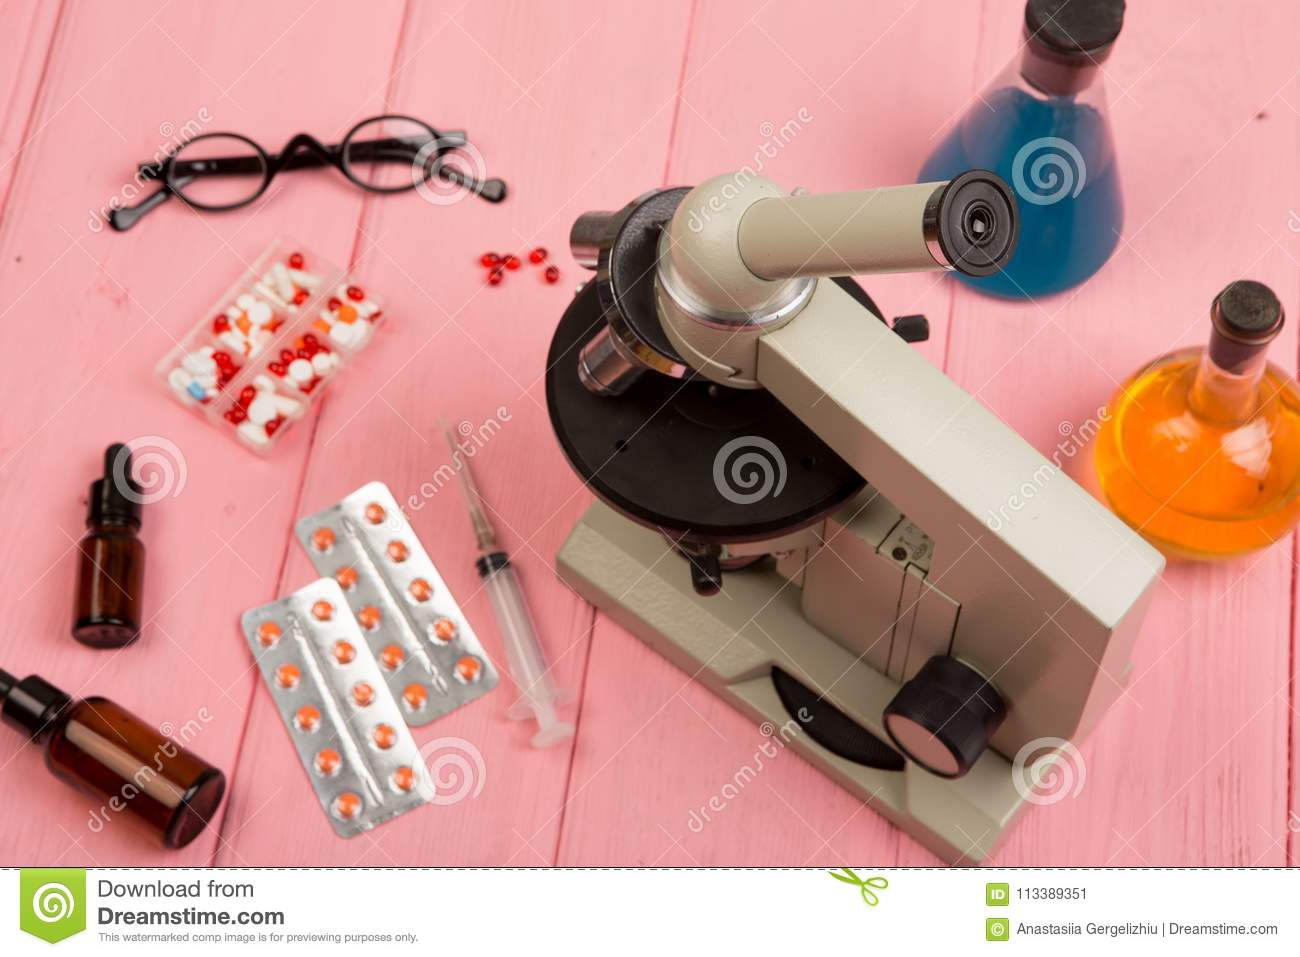 Workplace scientist doctor - microscope, pills, syringe, eyeglasses, chemical flasks with liquid on pink wooden table